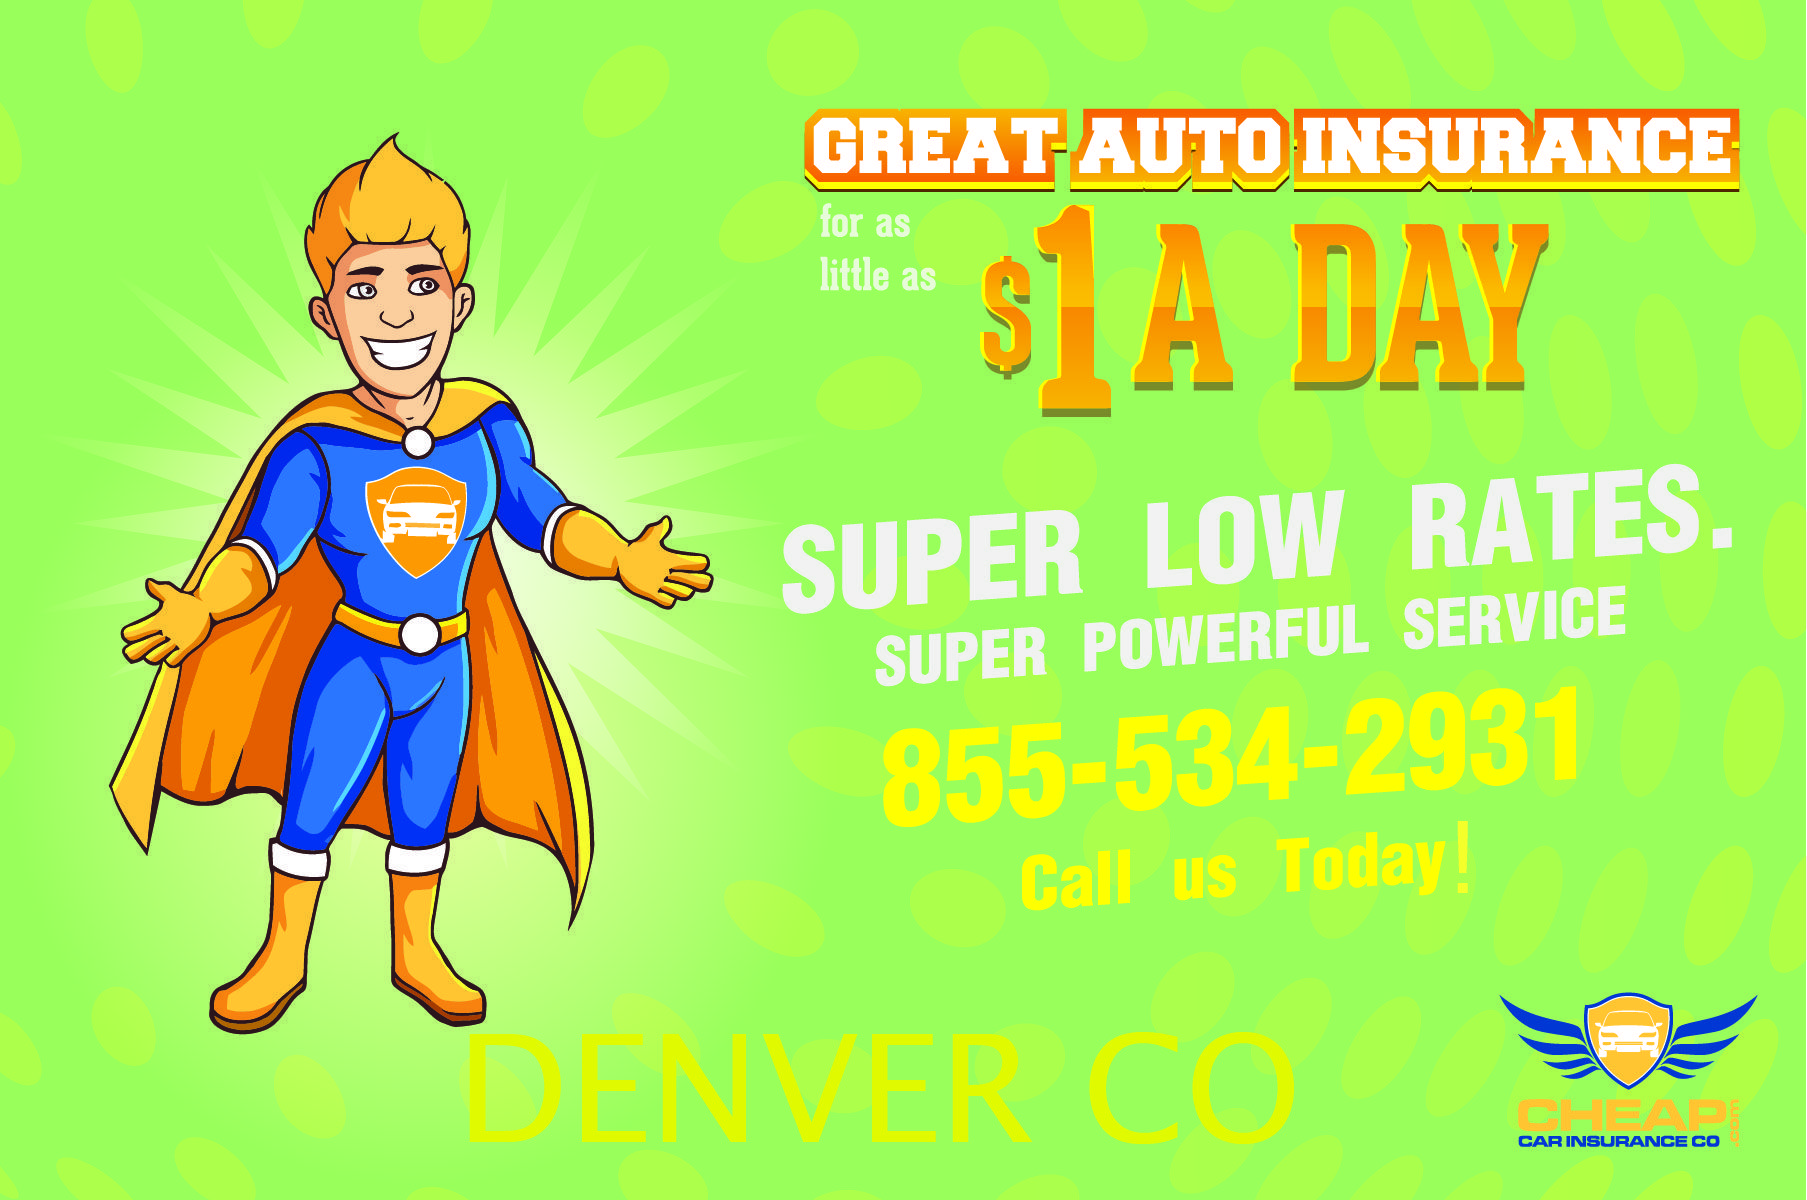 Get a quote Car insurance from The Cooperative Step3